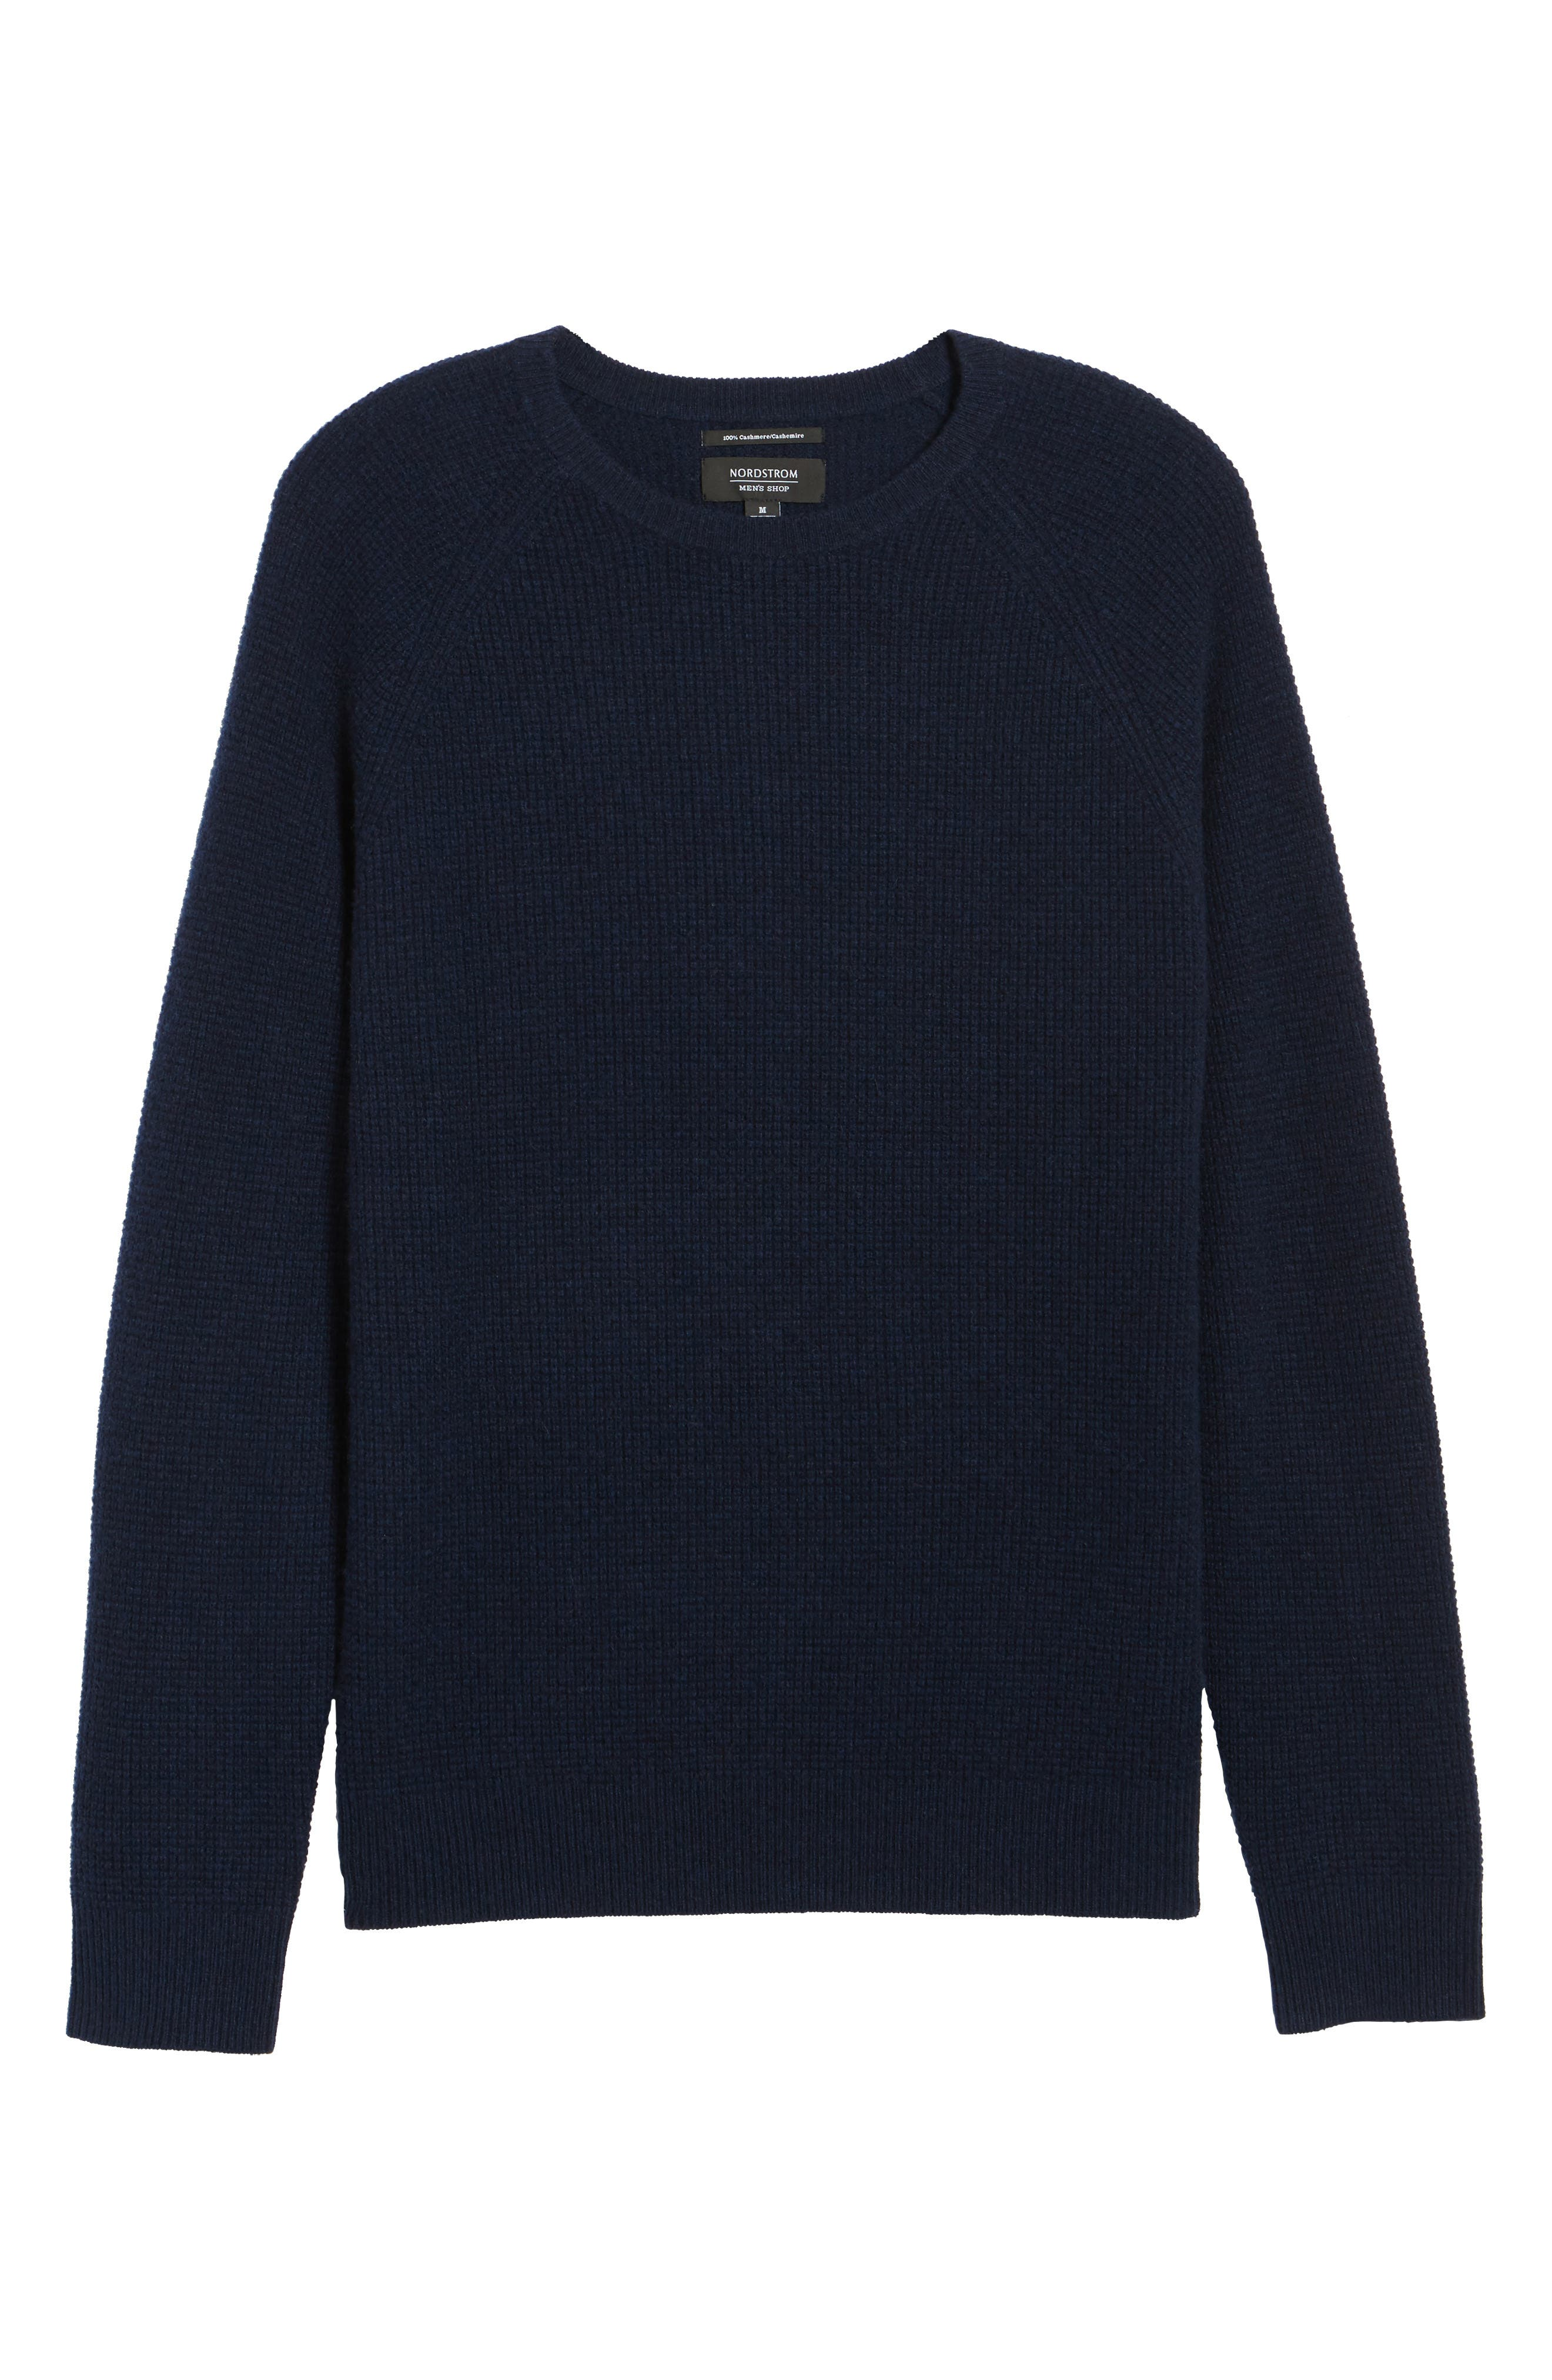 Cashmere Waffle Knit Pullover,                             Alternate thumbnail 6, color,                             Navy Charcoal